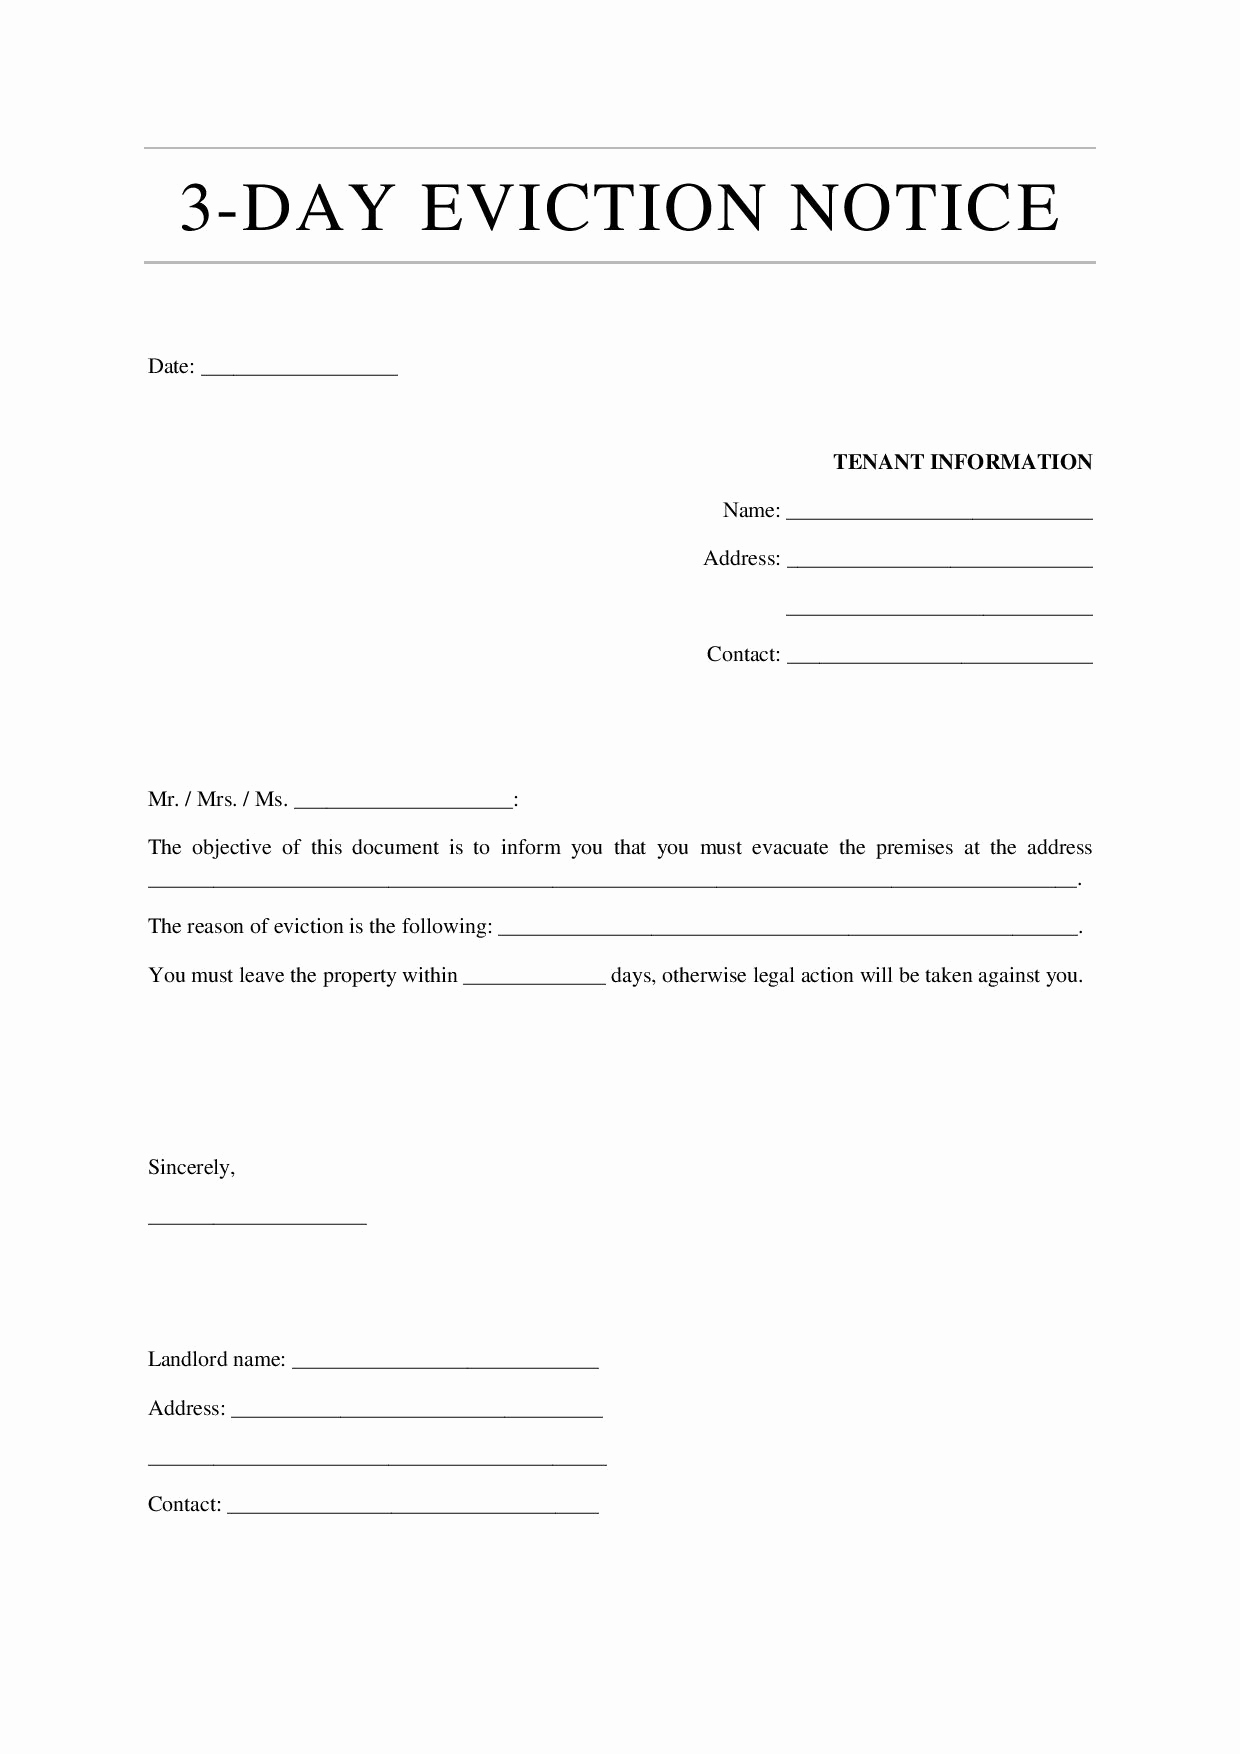 Roommate Eviction Notice Template Unique 12 Eviction Notice Template Examples